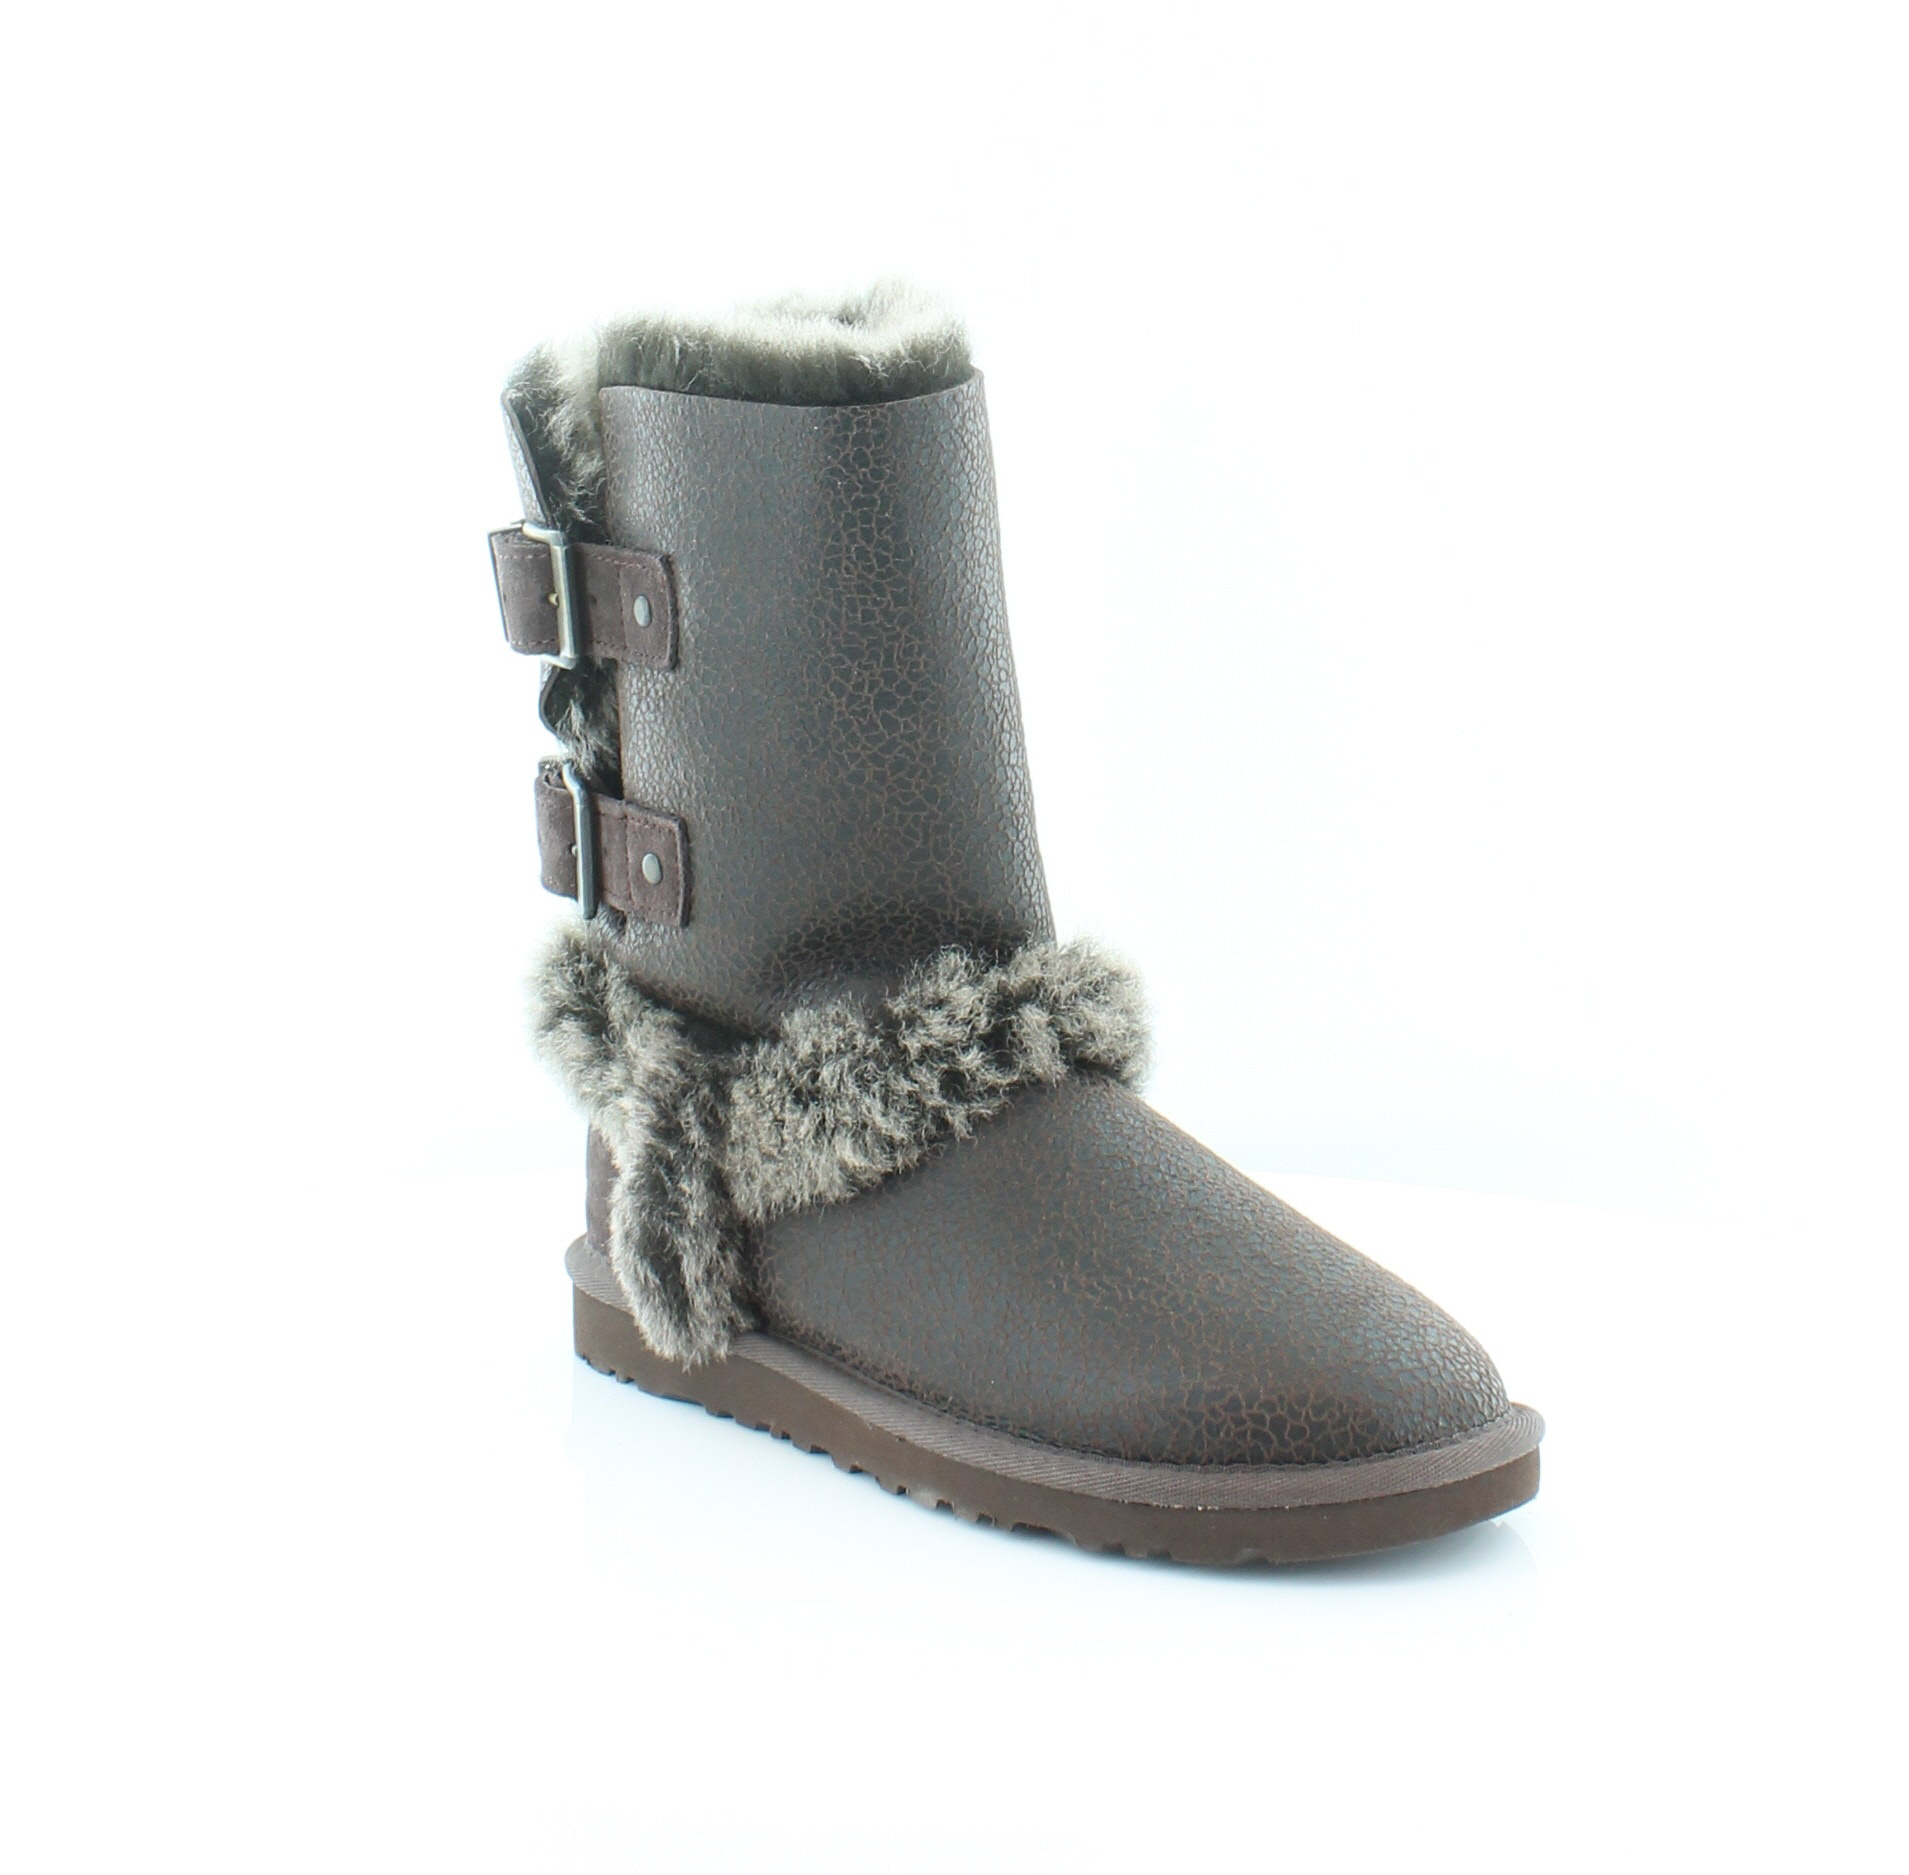 98ac939820f Details about UGG New Skylah Brown Womens Shoes Size 5 M Boots MSRP $240